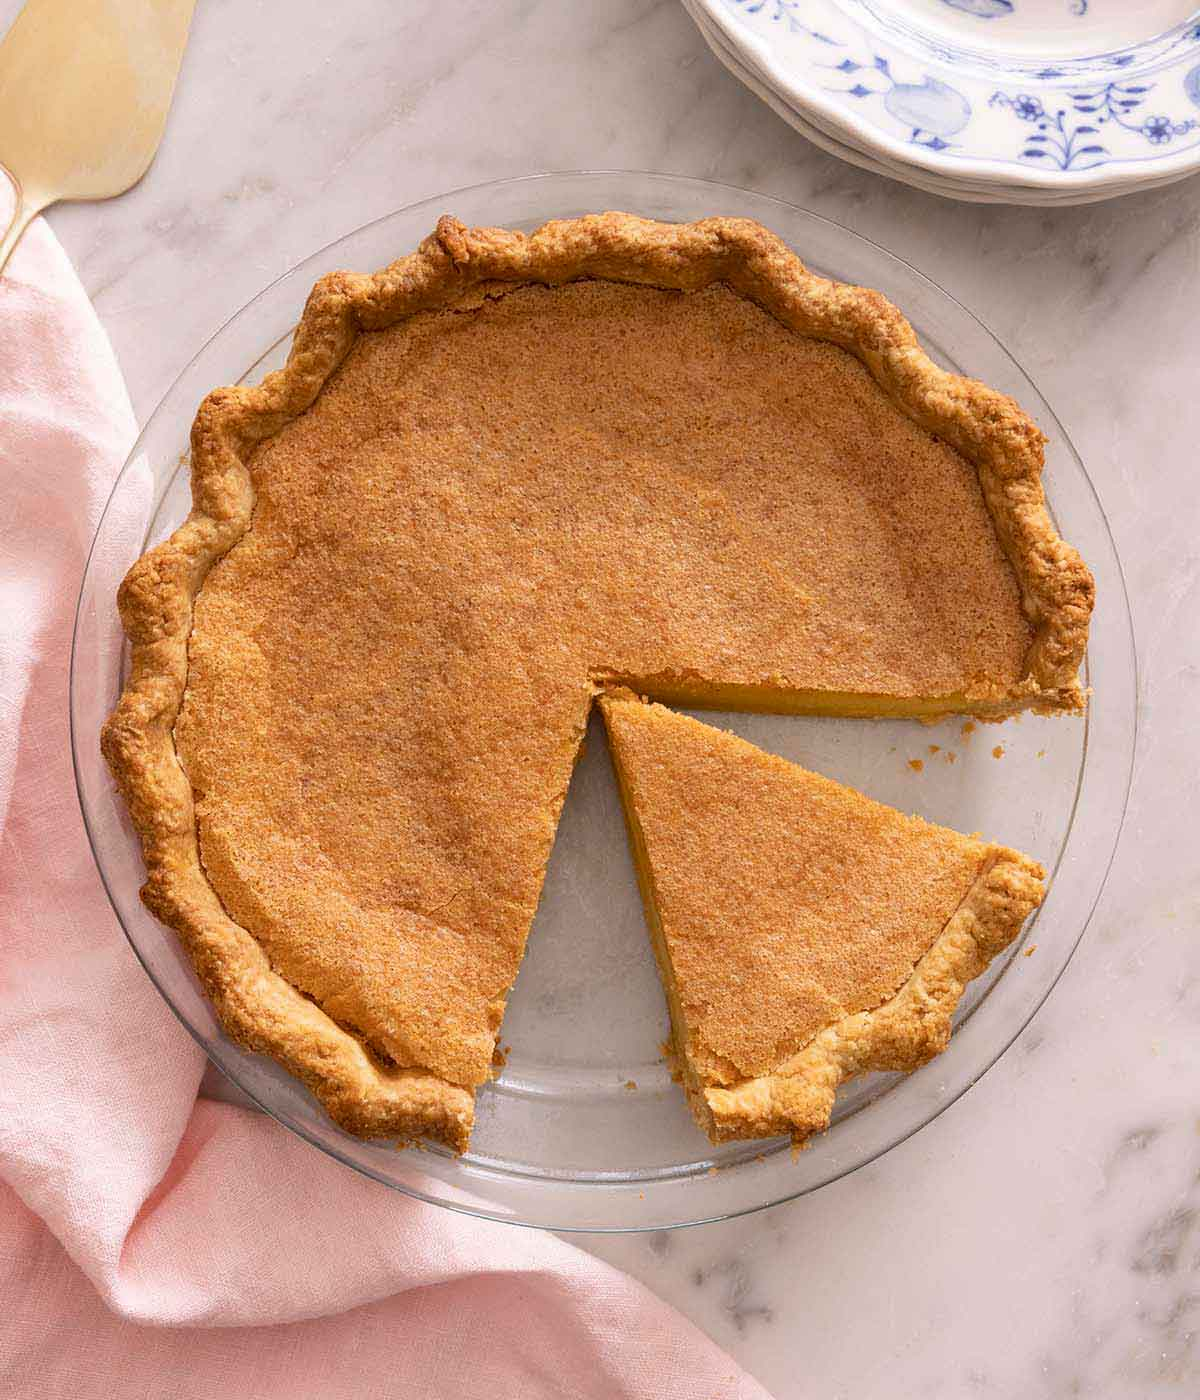 Overhead view of a chess pie in a pie dish with one slice removed and a cut slice in the dish.